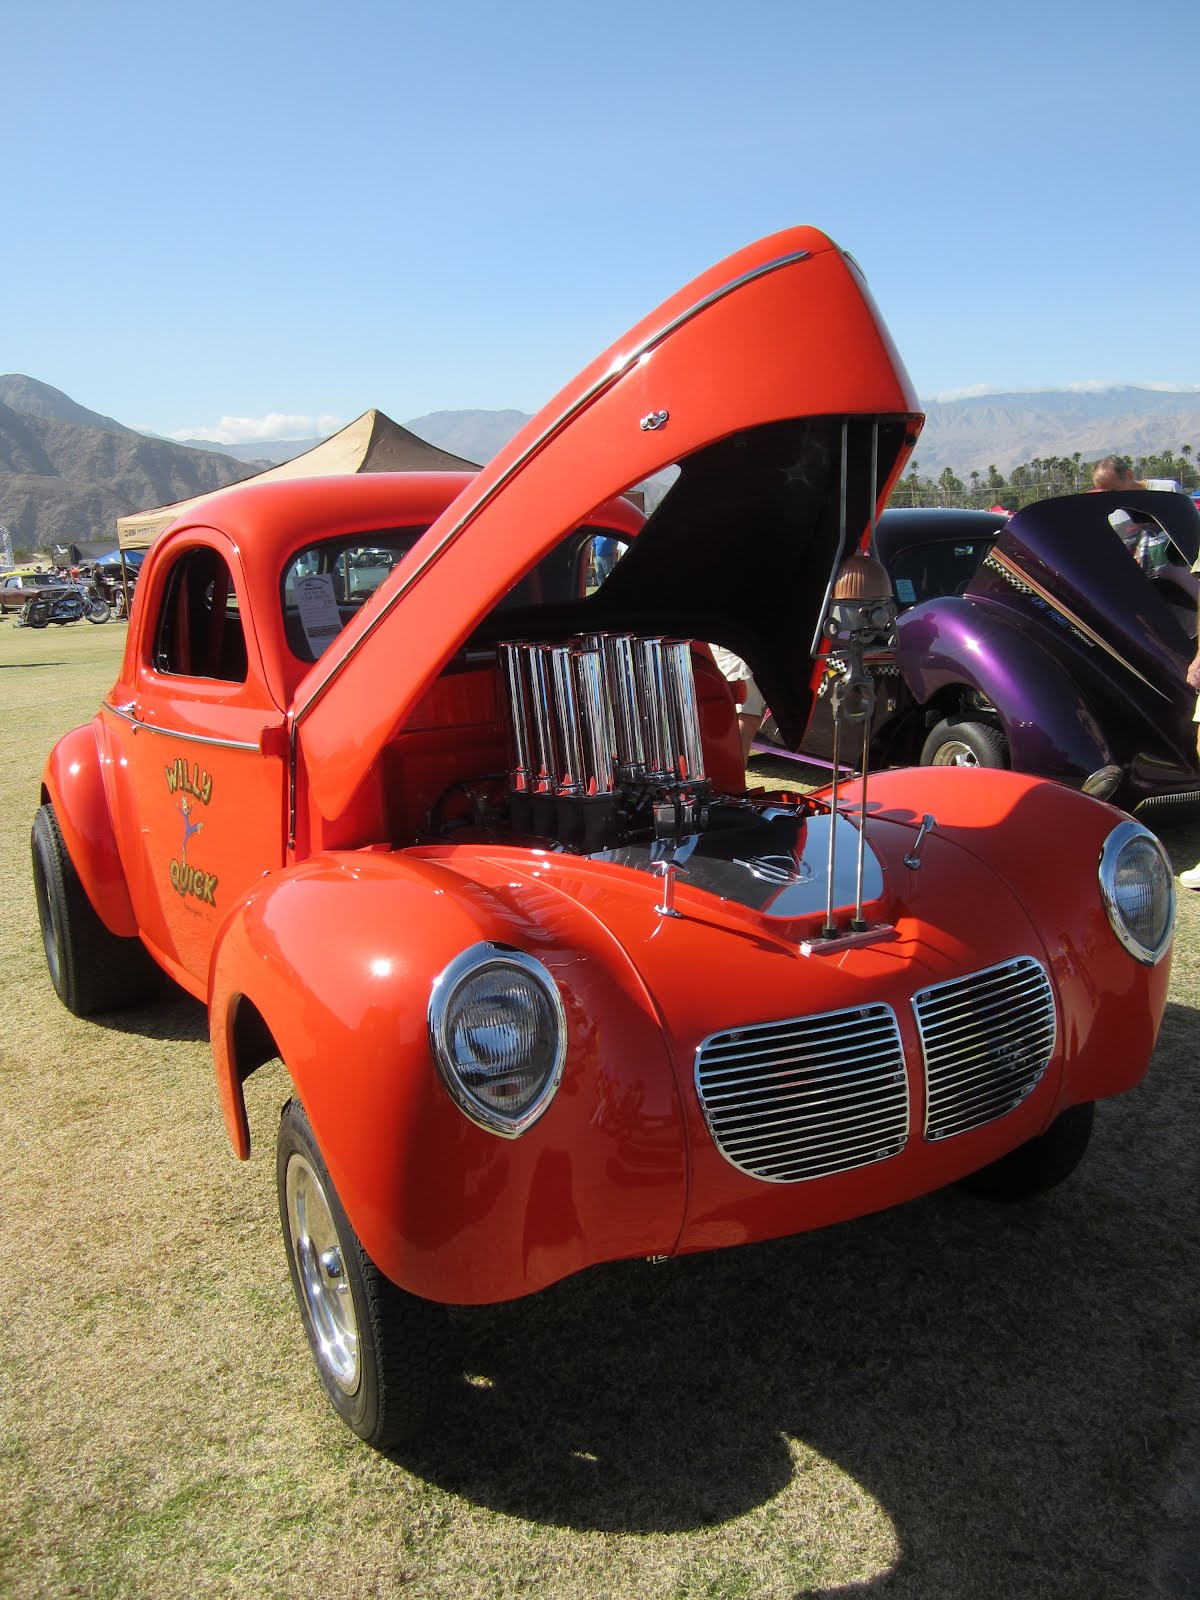 Covering Classic Cars Palm Desert Car Show Highlights - Palm springs car show